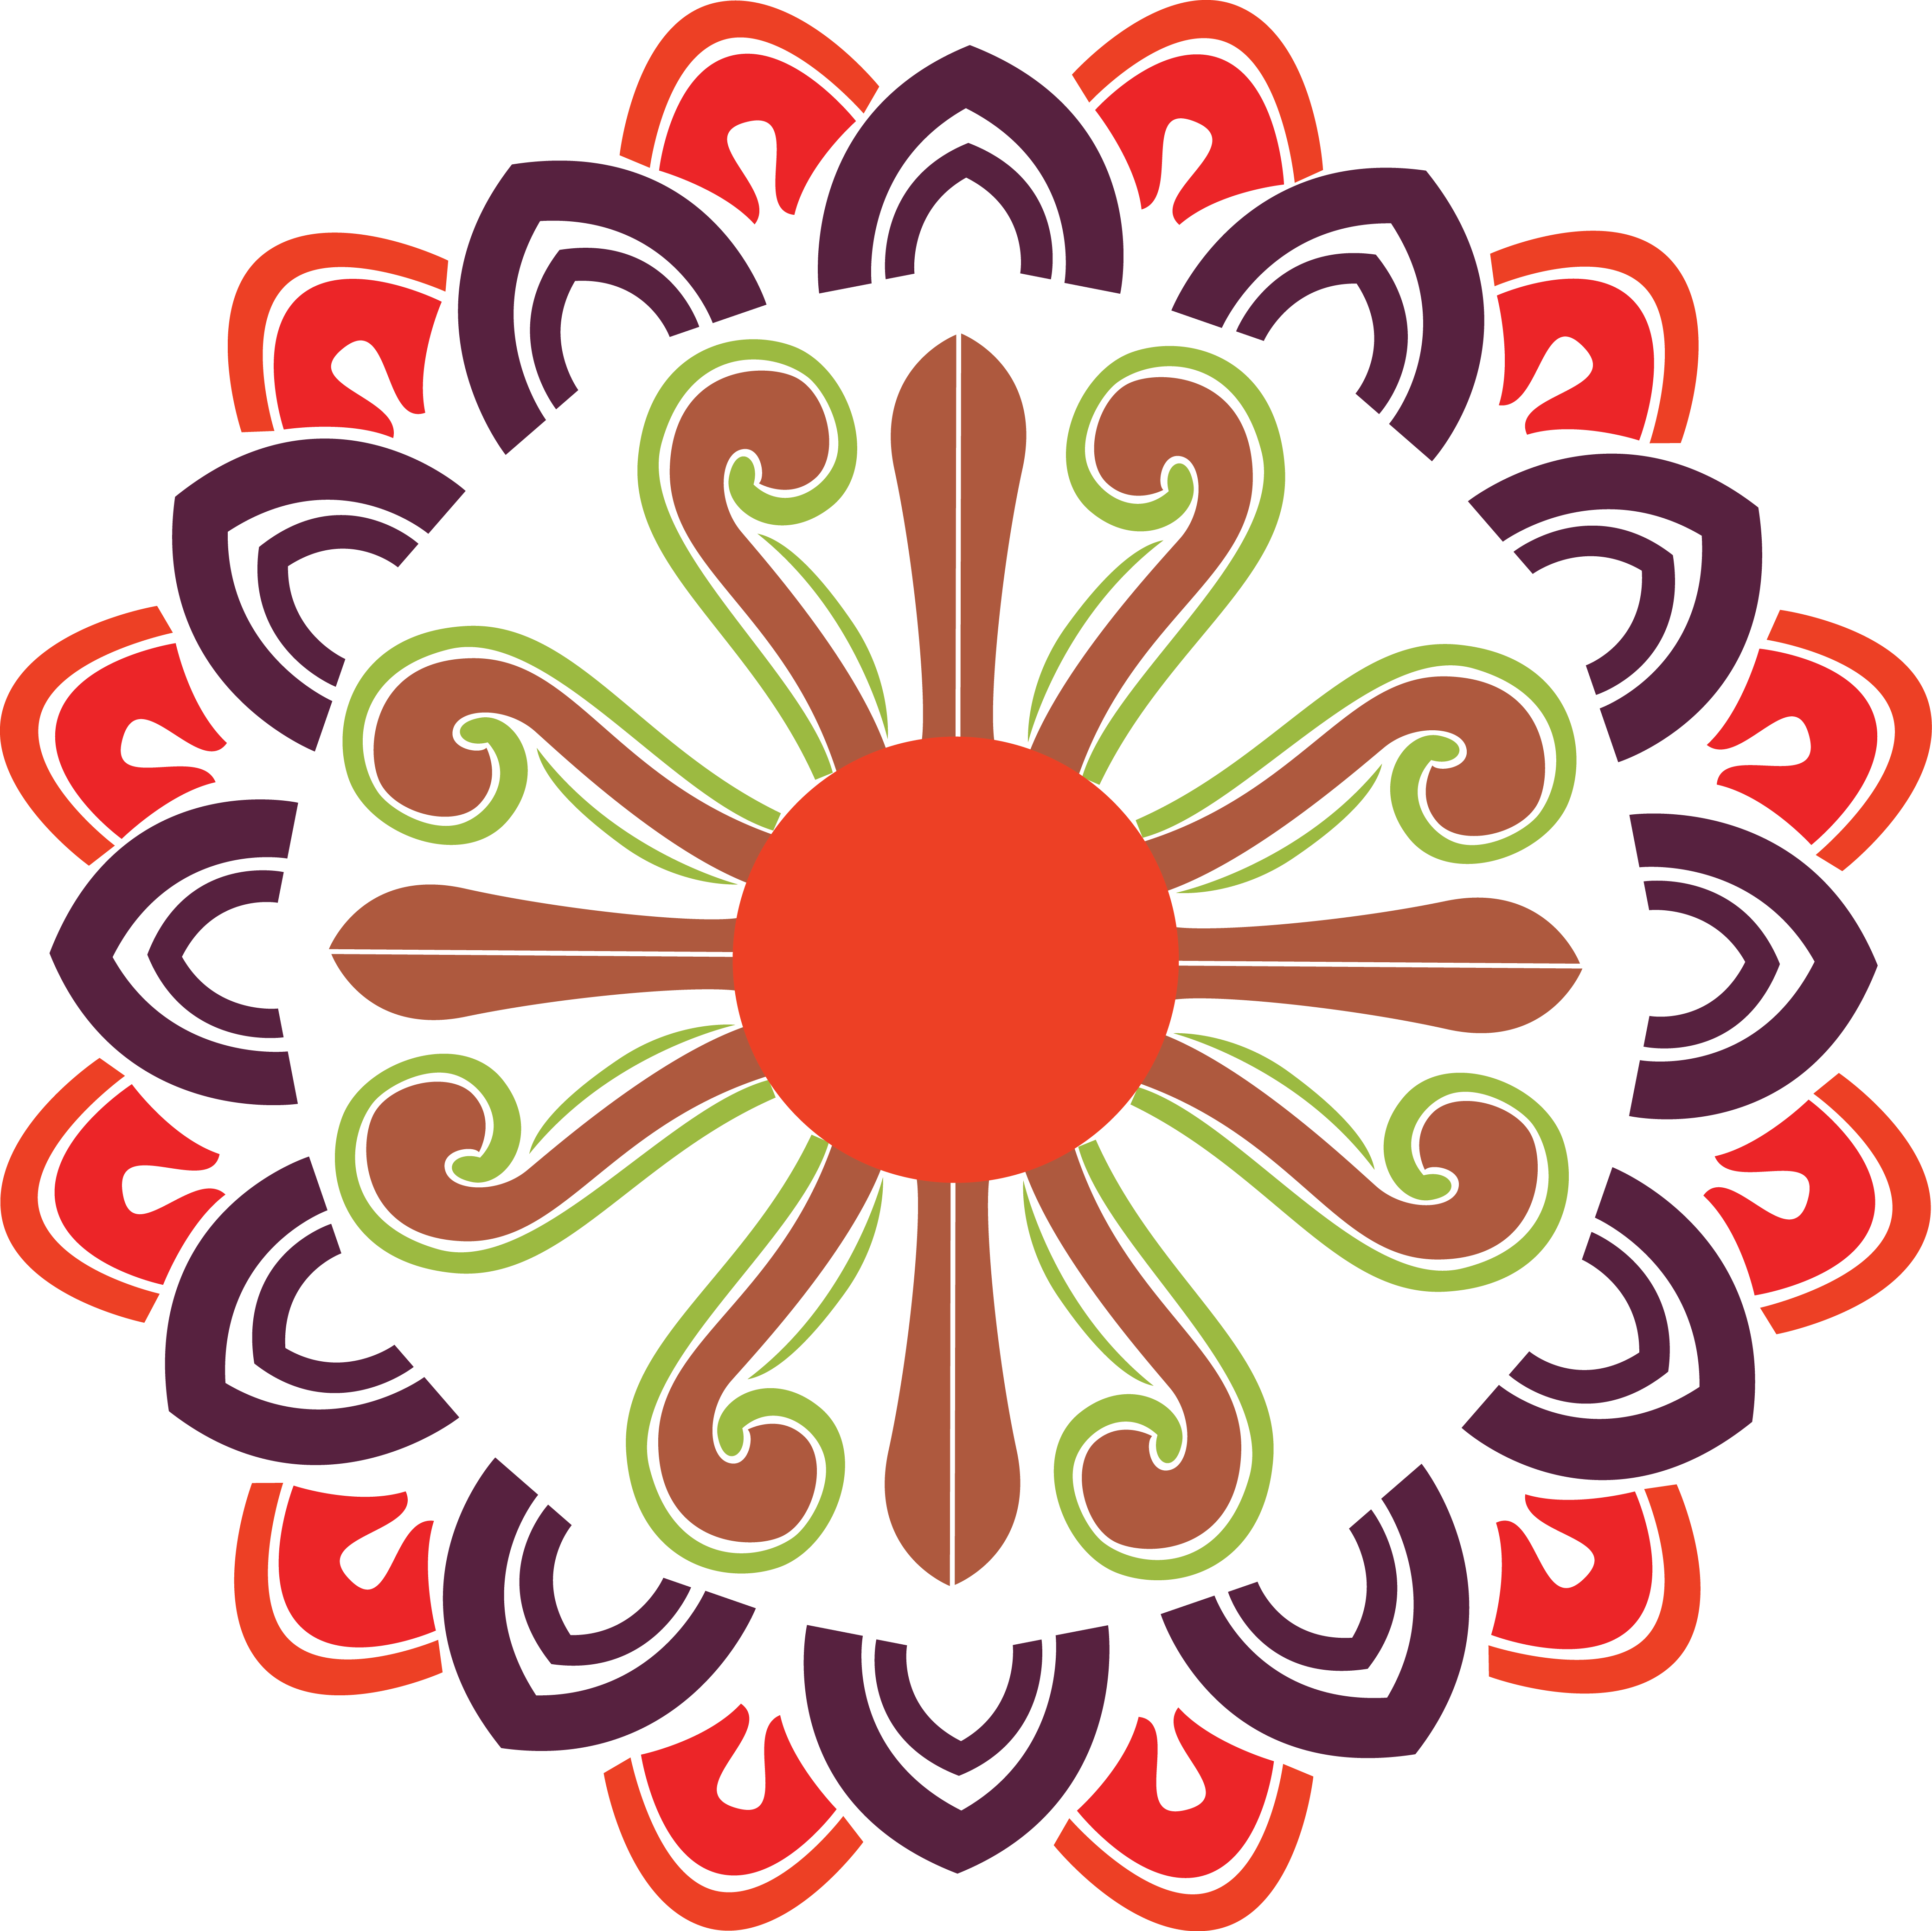 trinetra about free indian symbols  signs  patterns peacock feather clipart images peacock clipart pictures